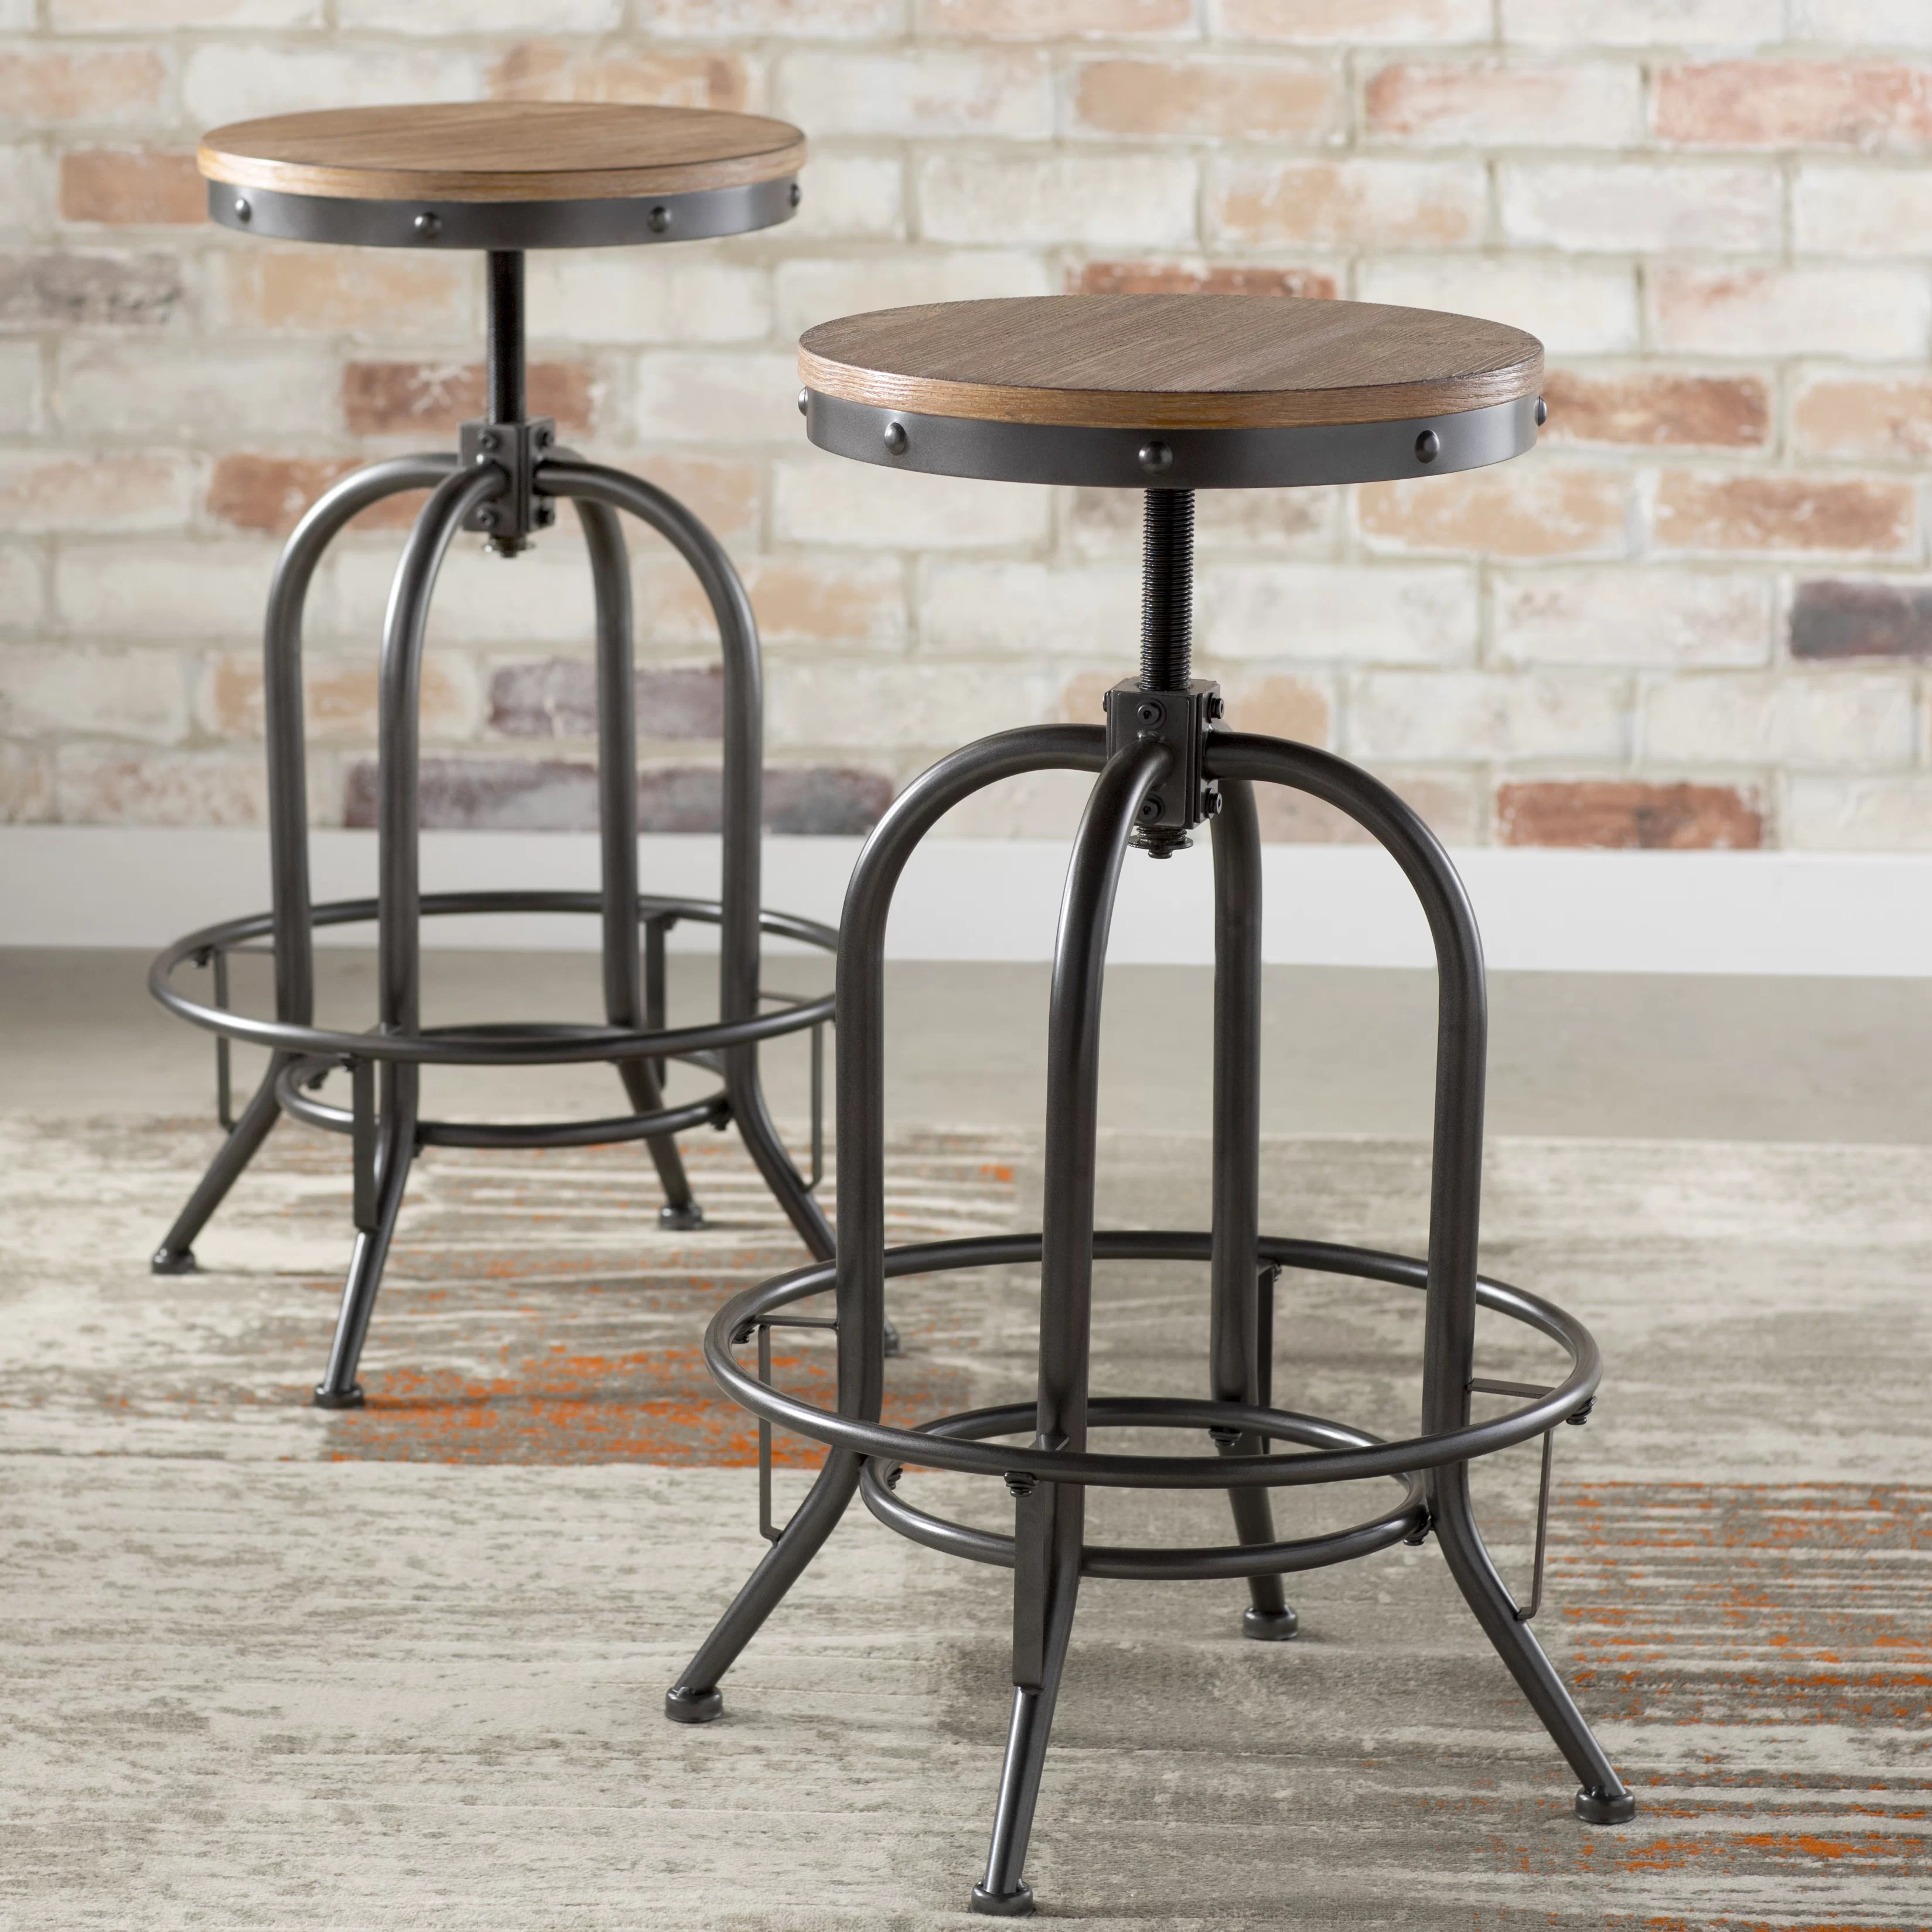 Table And Bar Stools Empire Adjustable Height Swivel Bar Stool